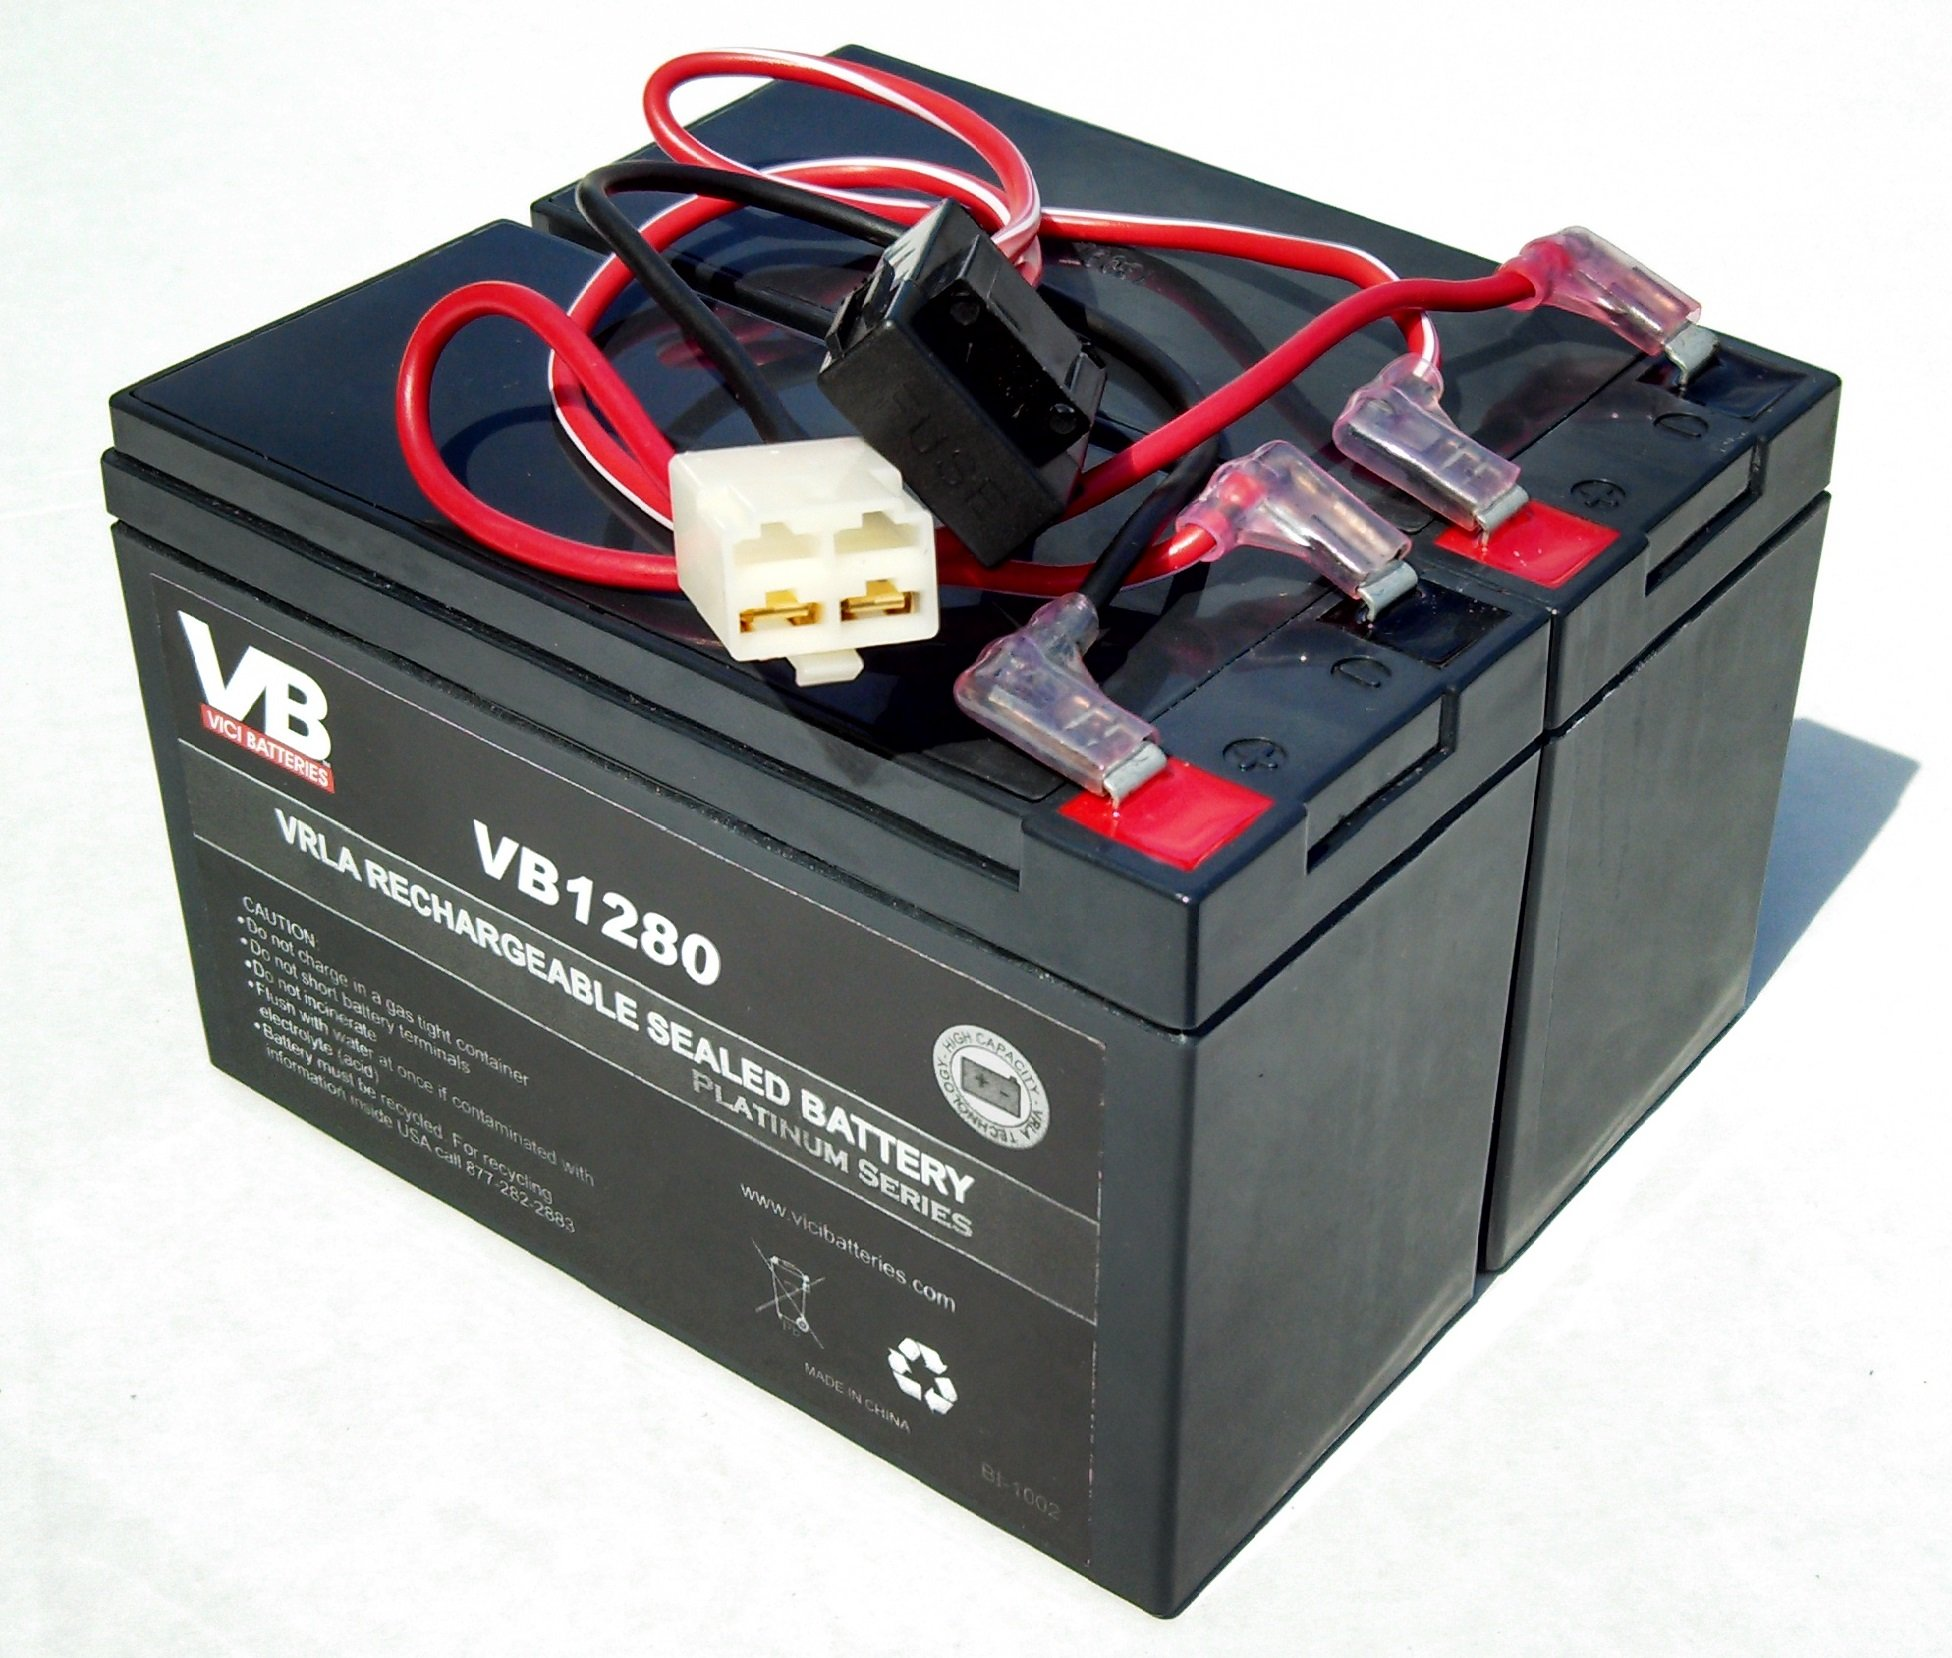 Ground Force Drifter Razor Battery Replacement - Includes Wiring Harness (8 ah Capacity - 24 Volt System) by Vici Battery